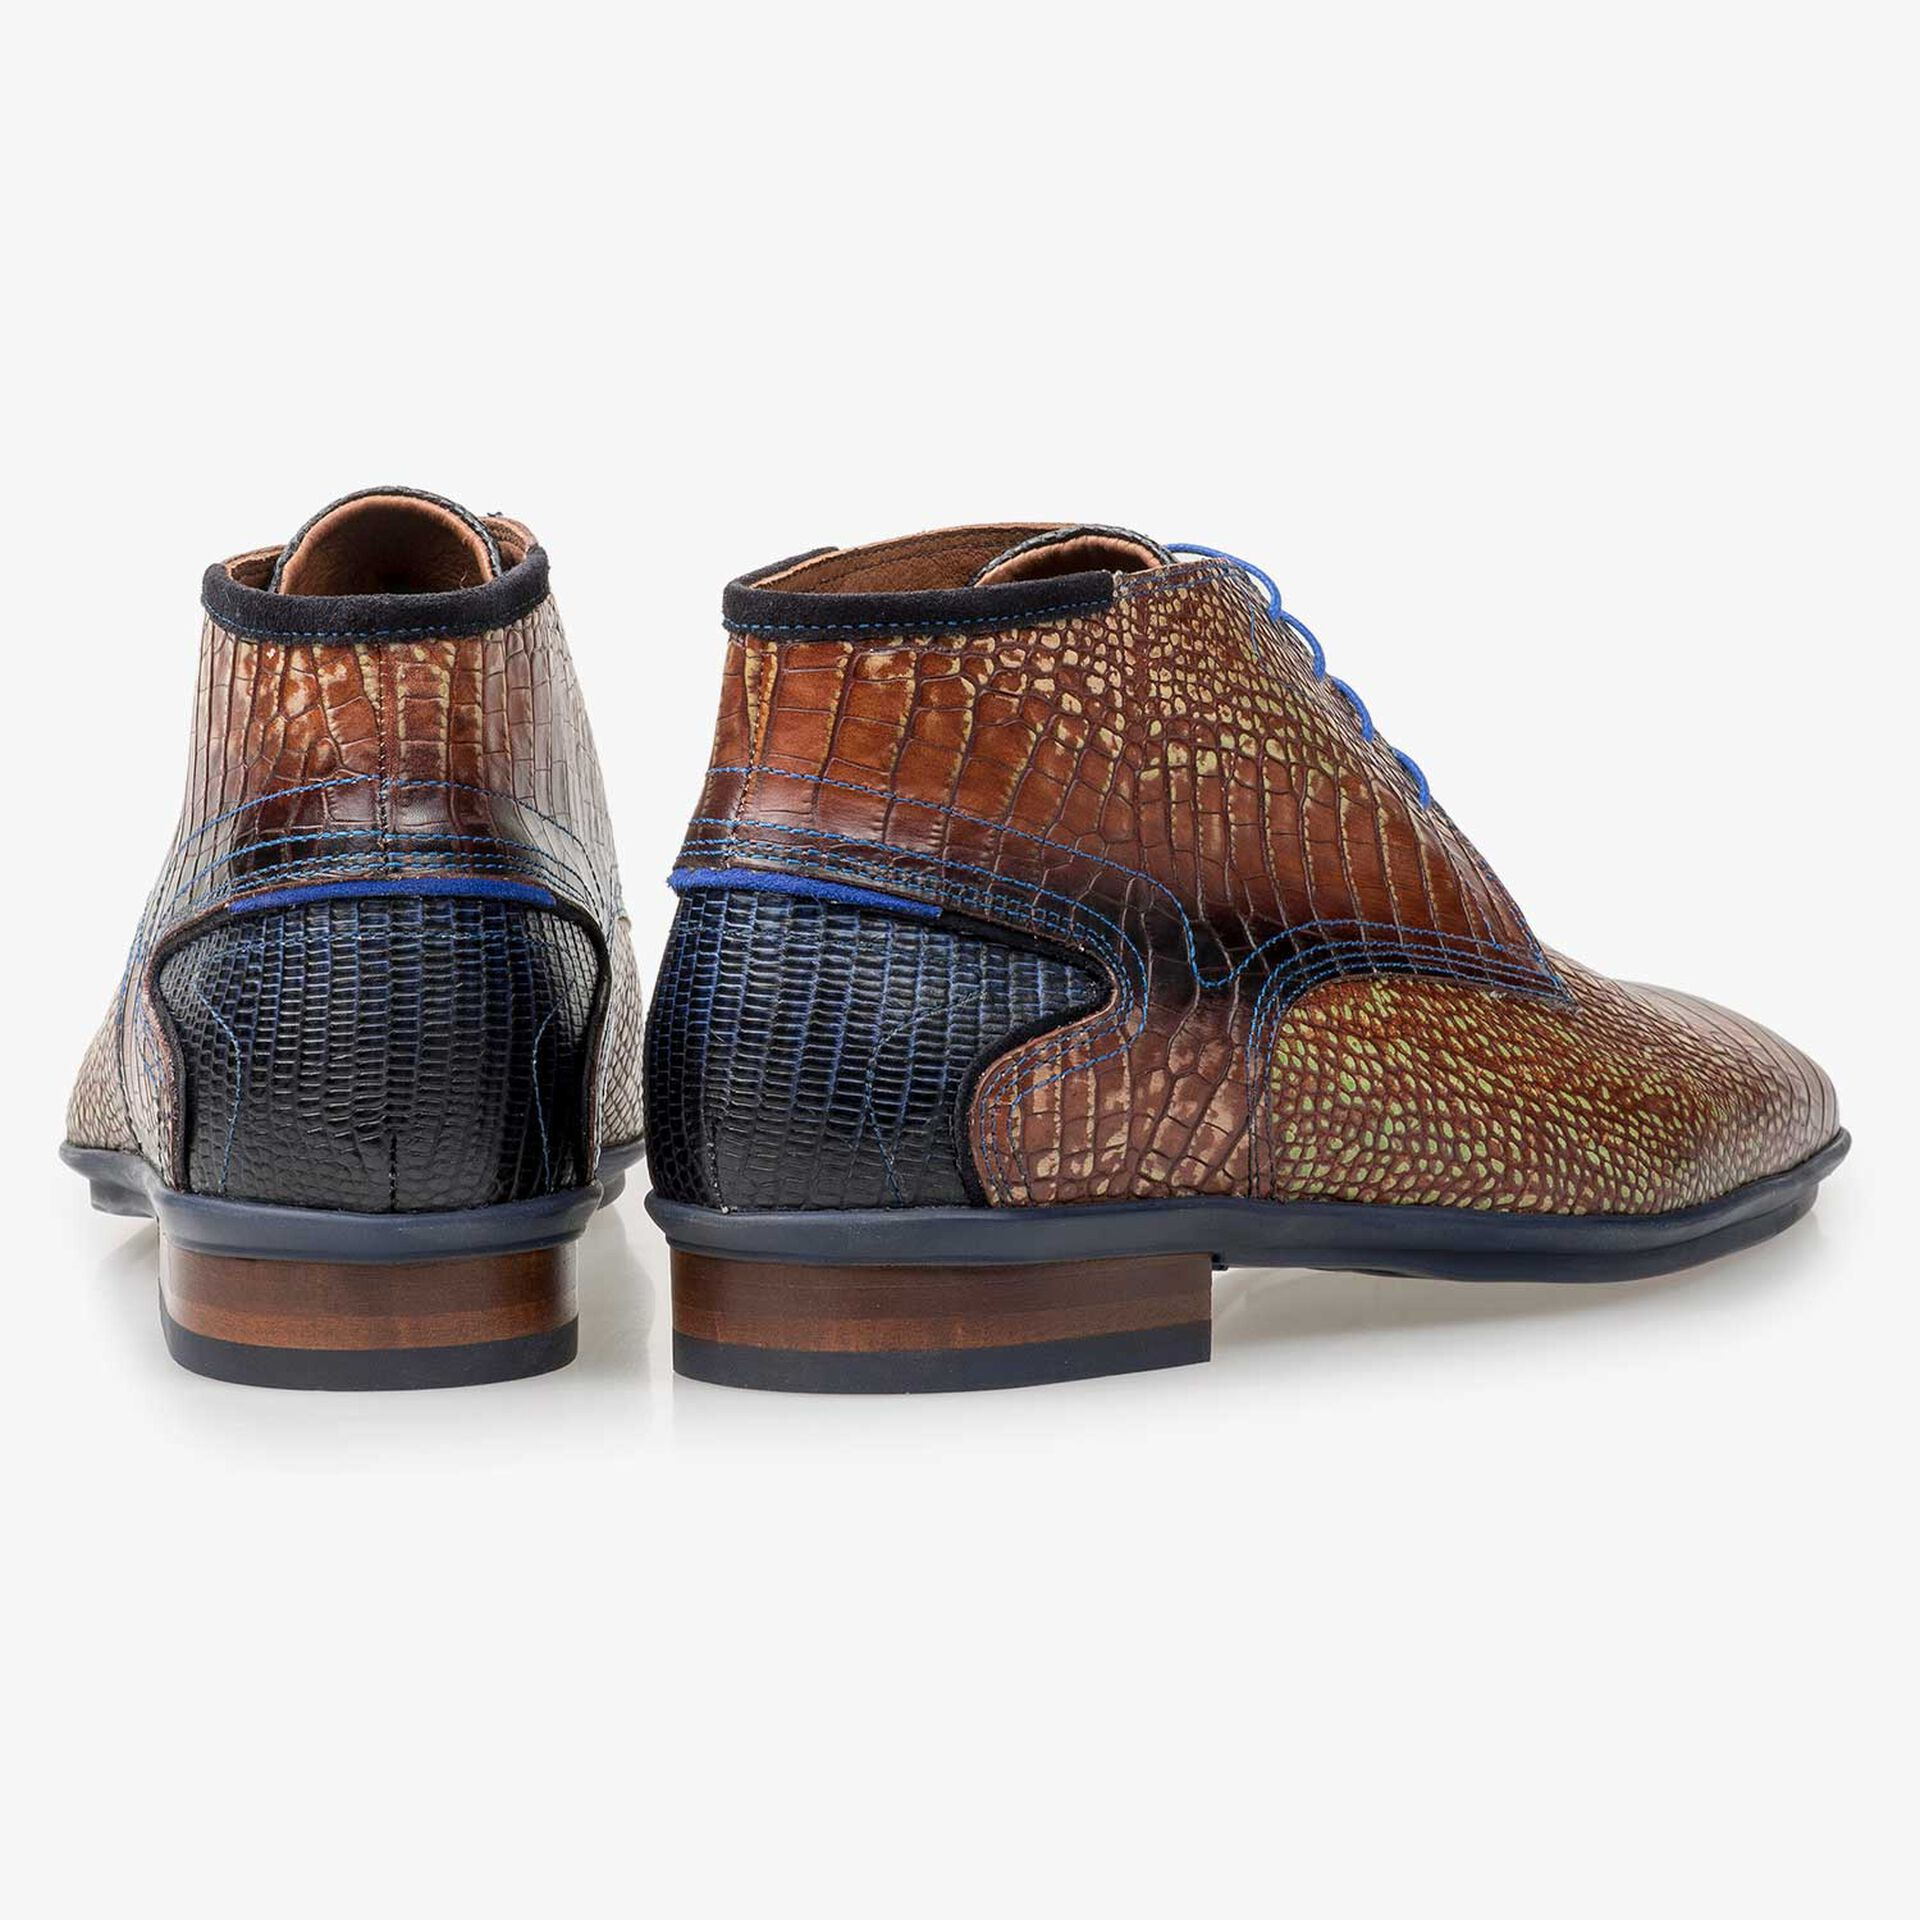 Cognac-coloured calf leather lace boot with croco print